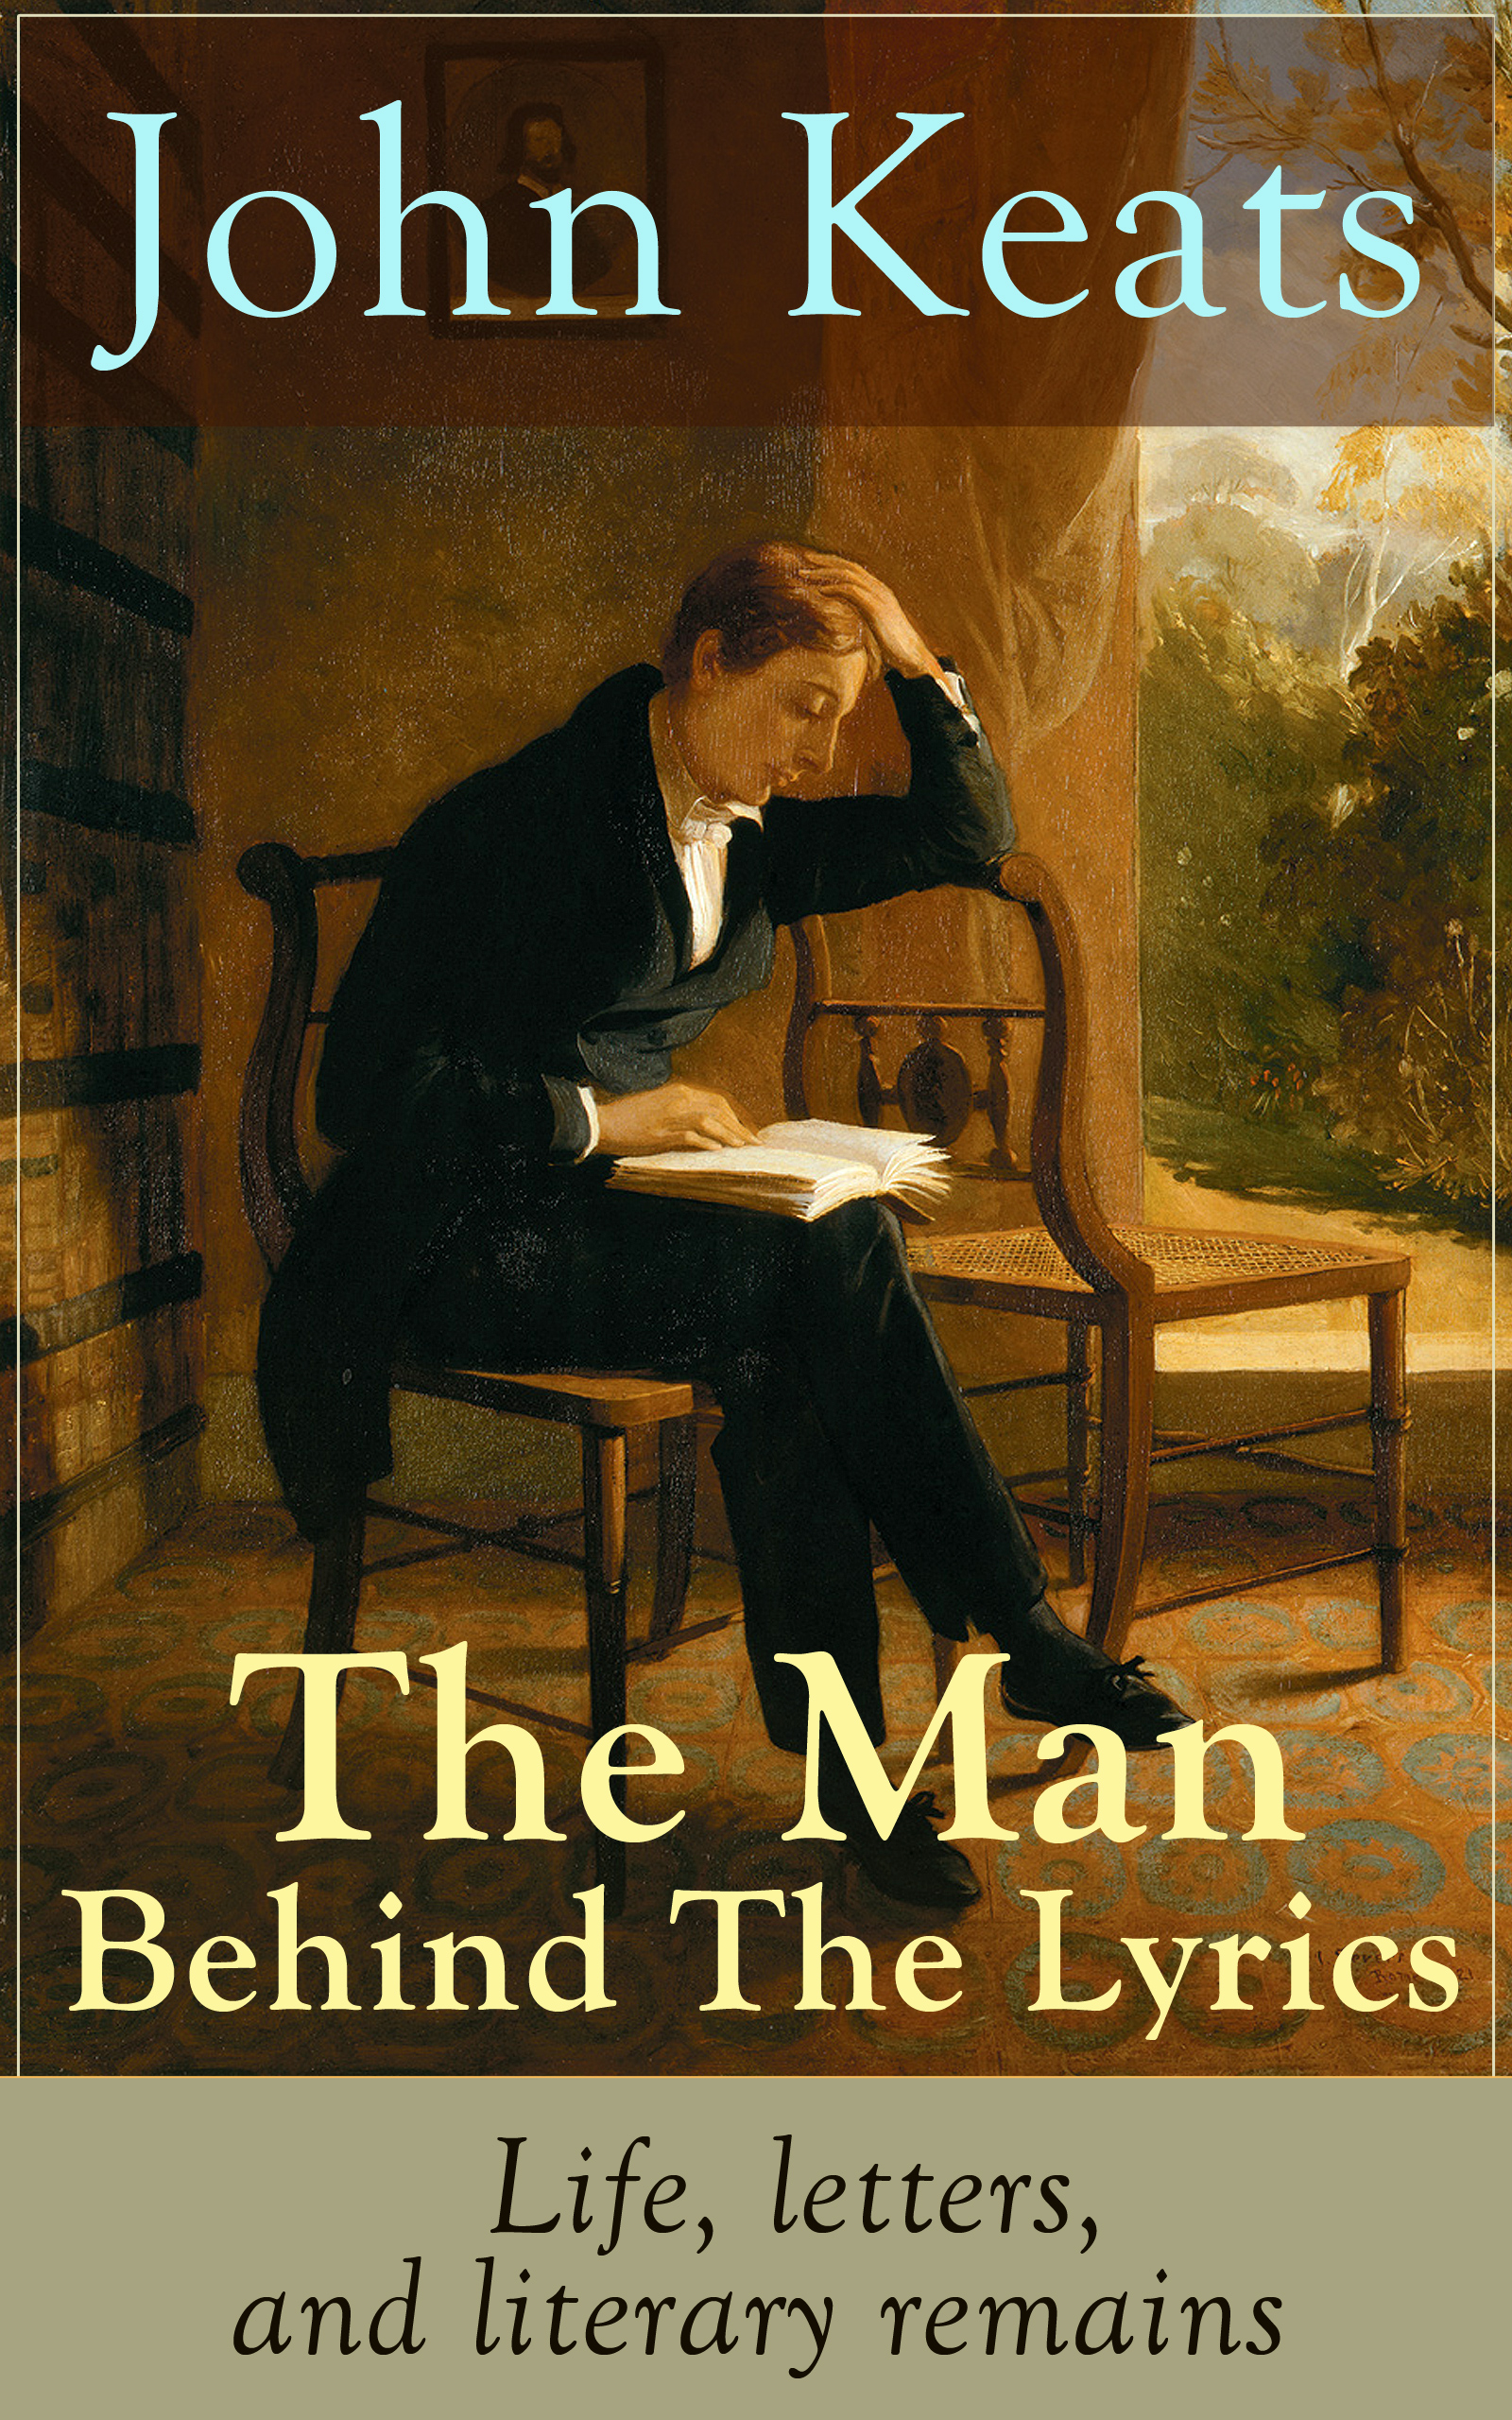 John Keats John Keats - The Man Behind The Lyrics: Life, letters, and literary remains complete poems and selected letters of john keats